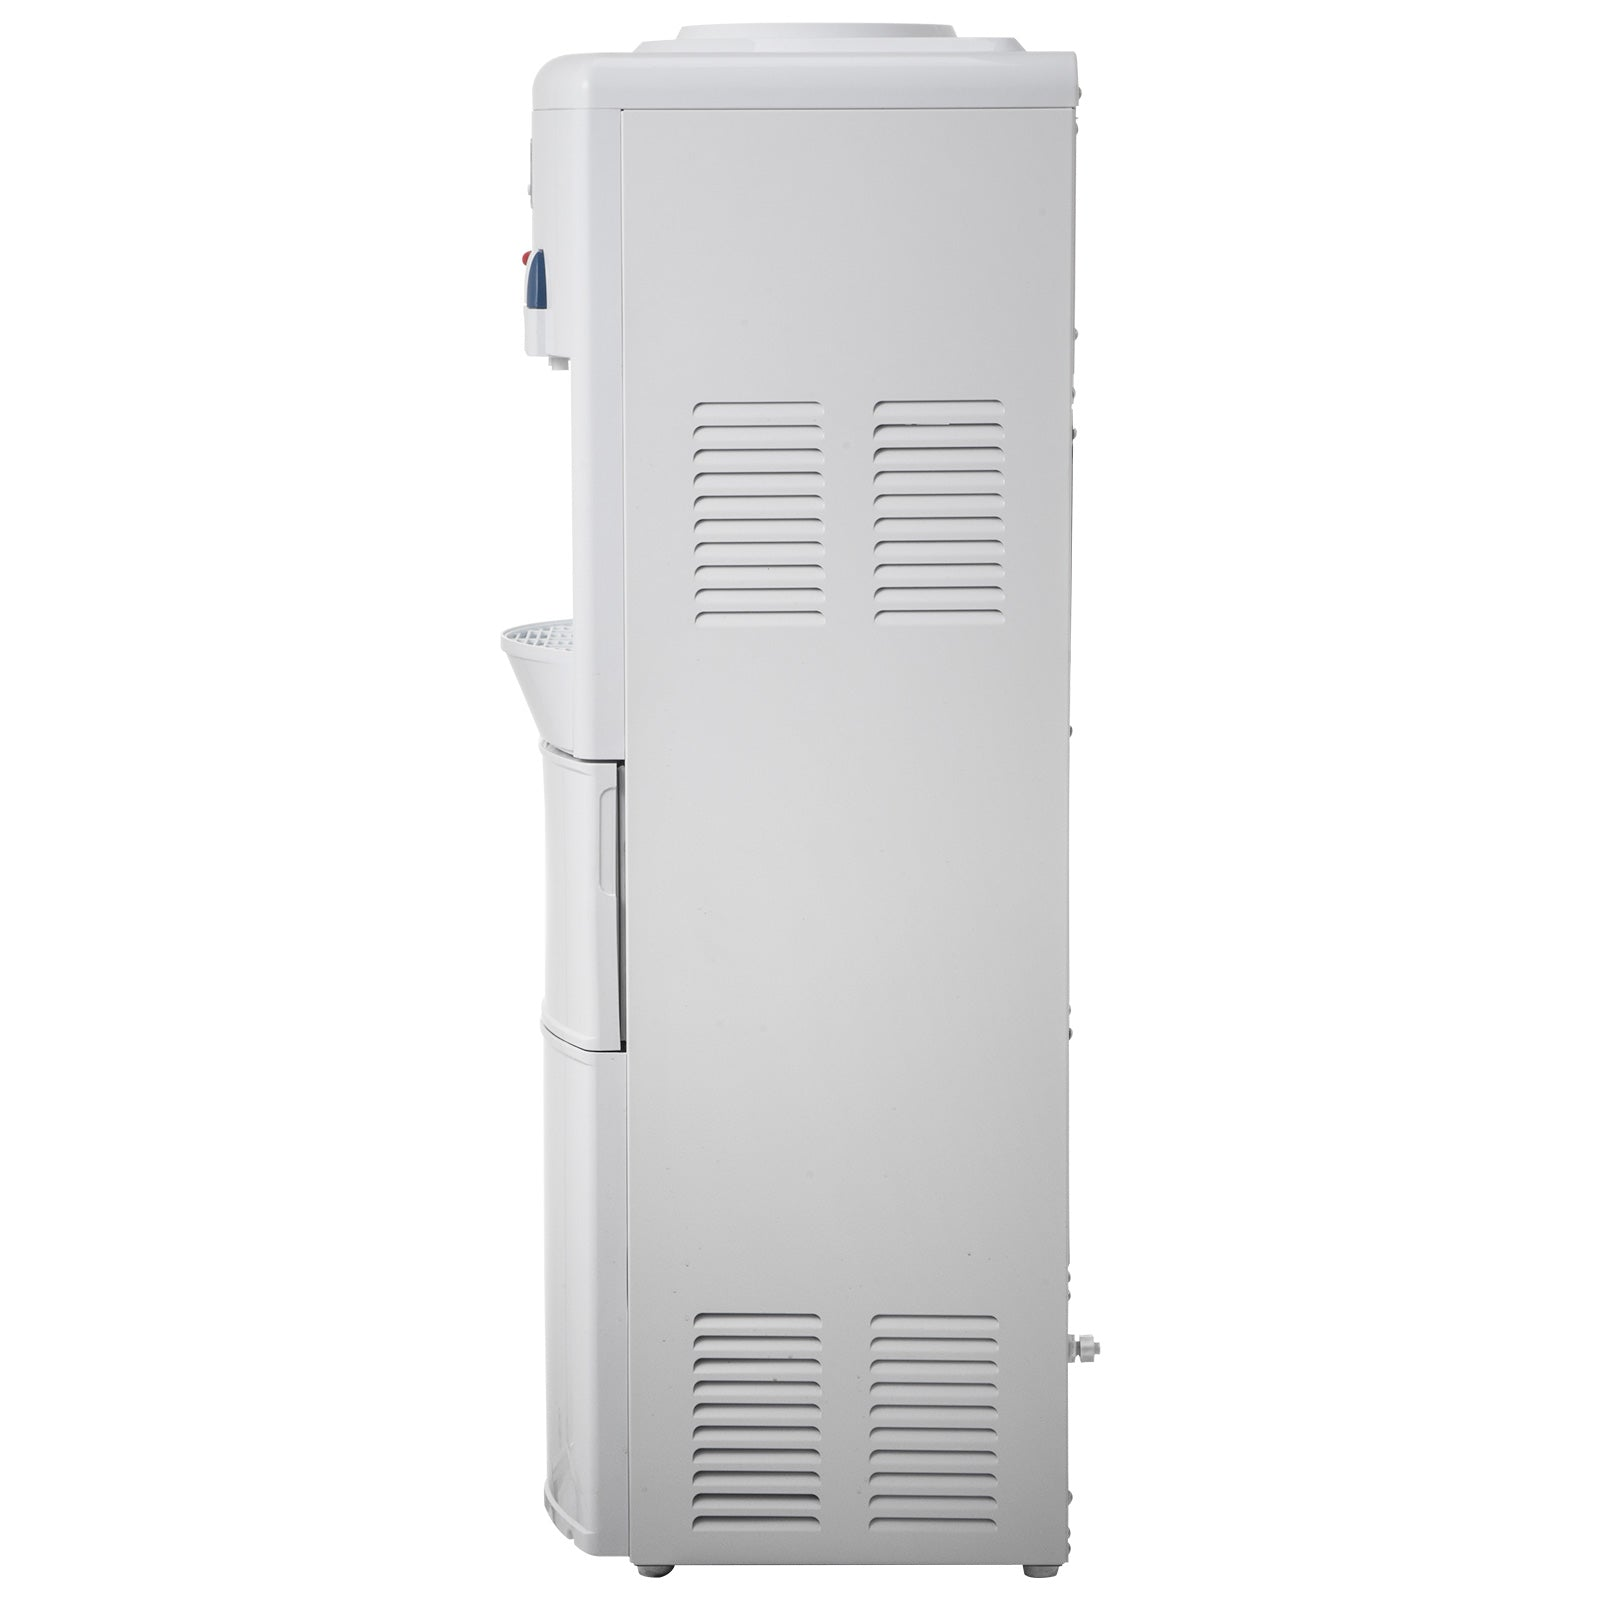 Electric Water Cooler Dispenser Built In Ice Maker White Hot Cold Water Cooler